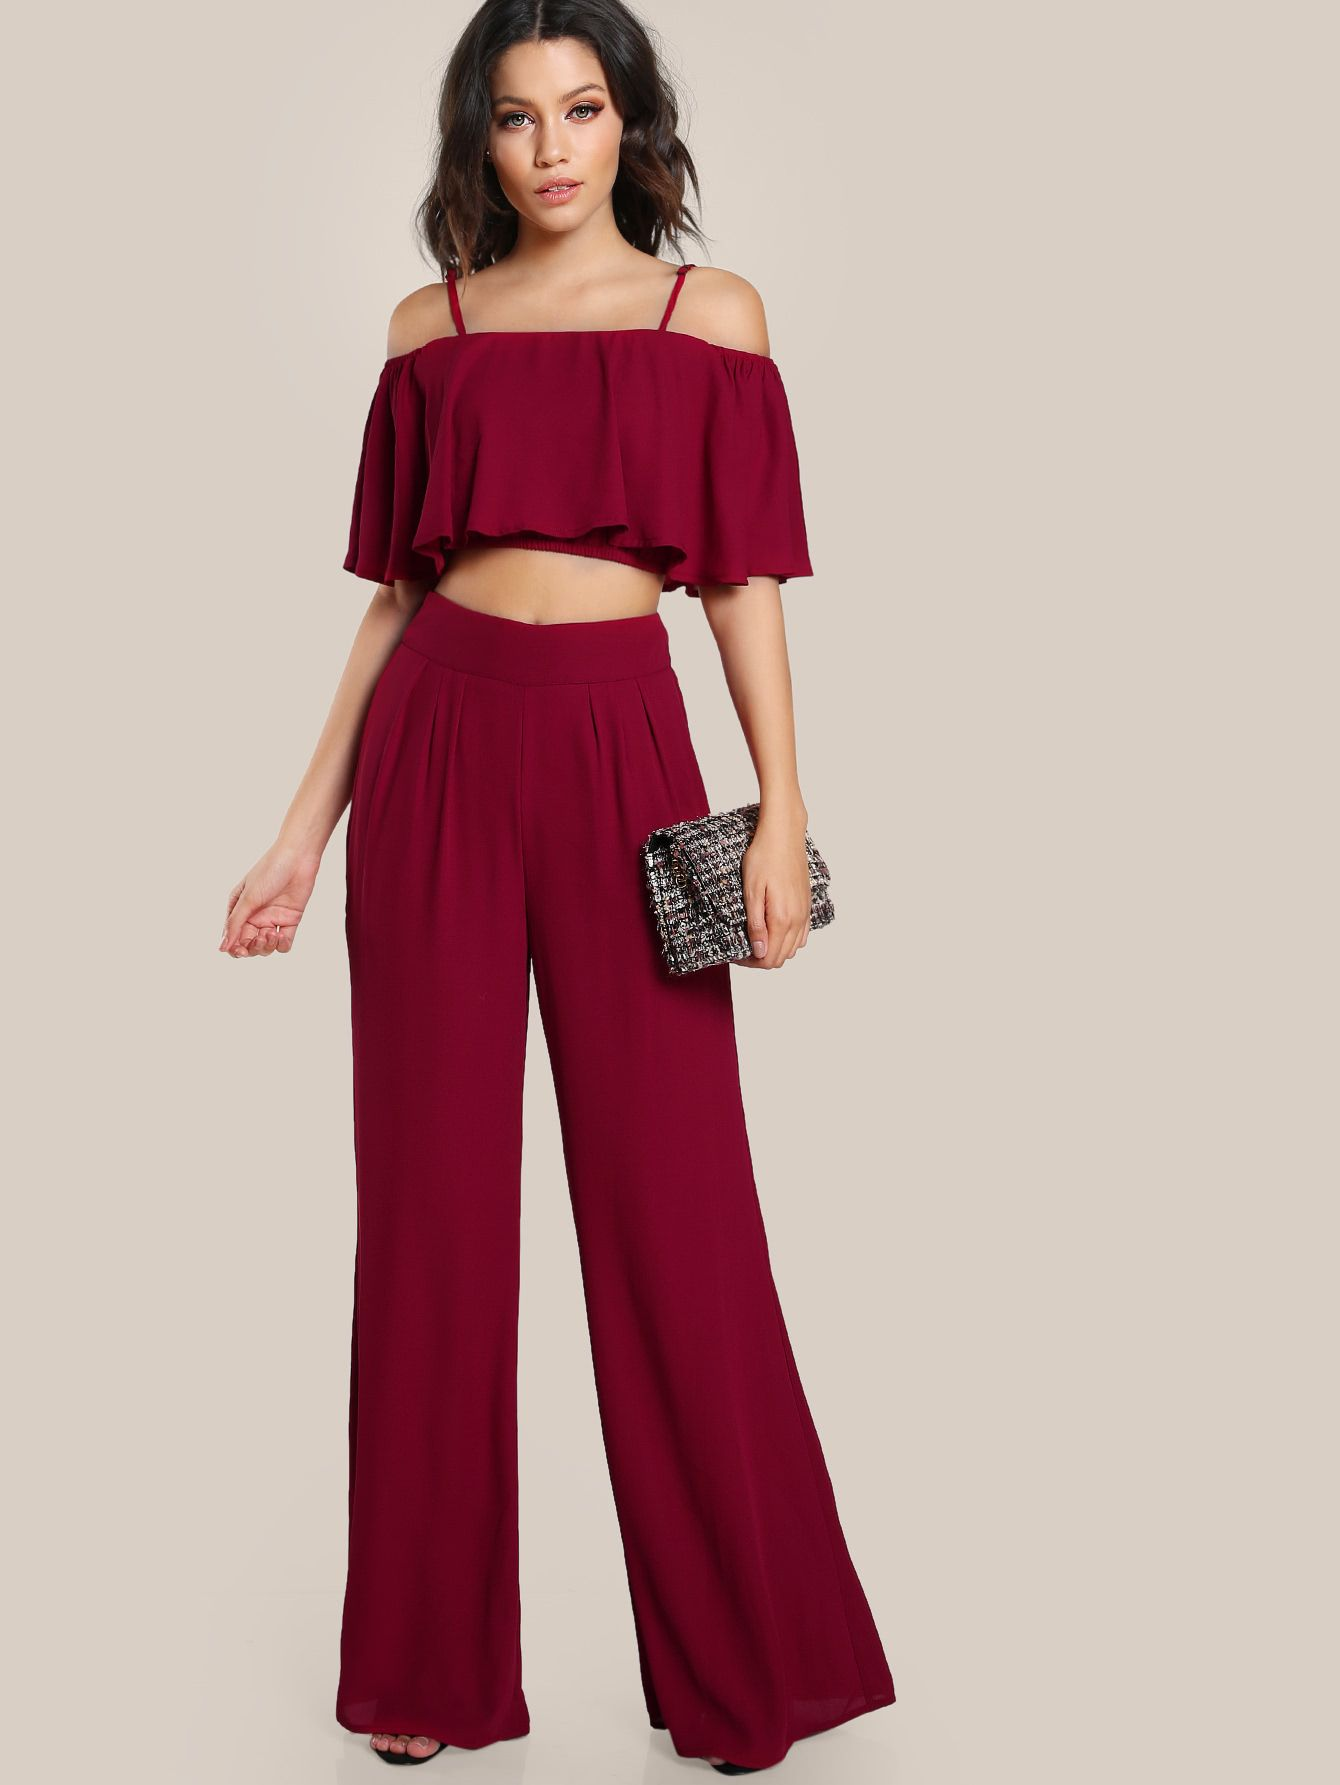 1a71b5df4b Shop Crop Flounce Top And Box Pleated Palazzo Pants Set online. SheIn  offers Crop Flounce Top And Box Pleated Palazzo Pants Set & more to fit  your ...